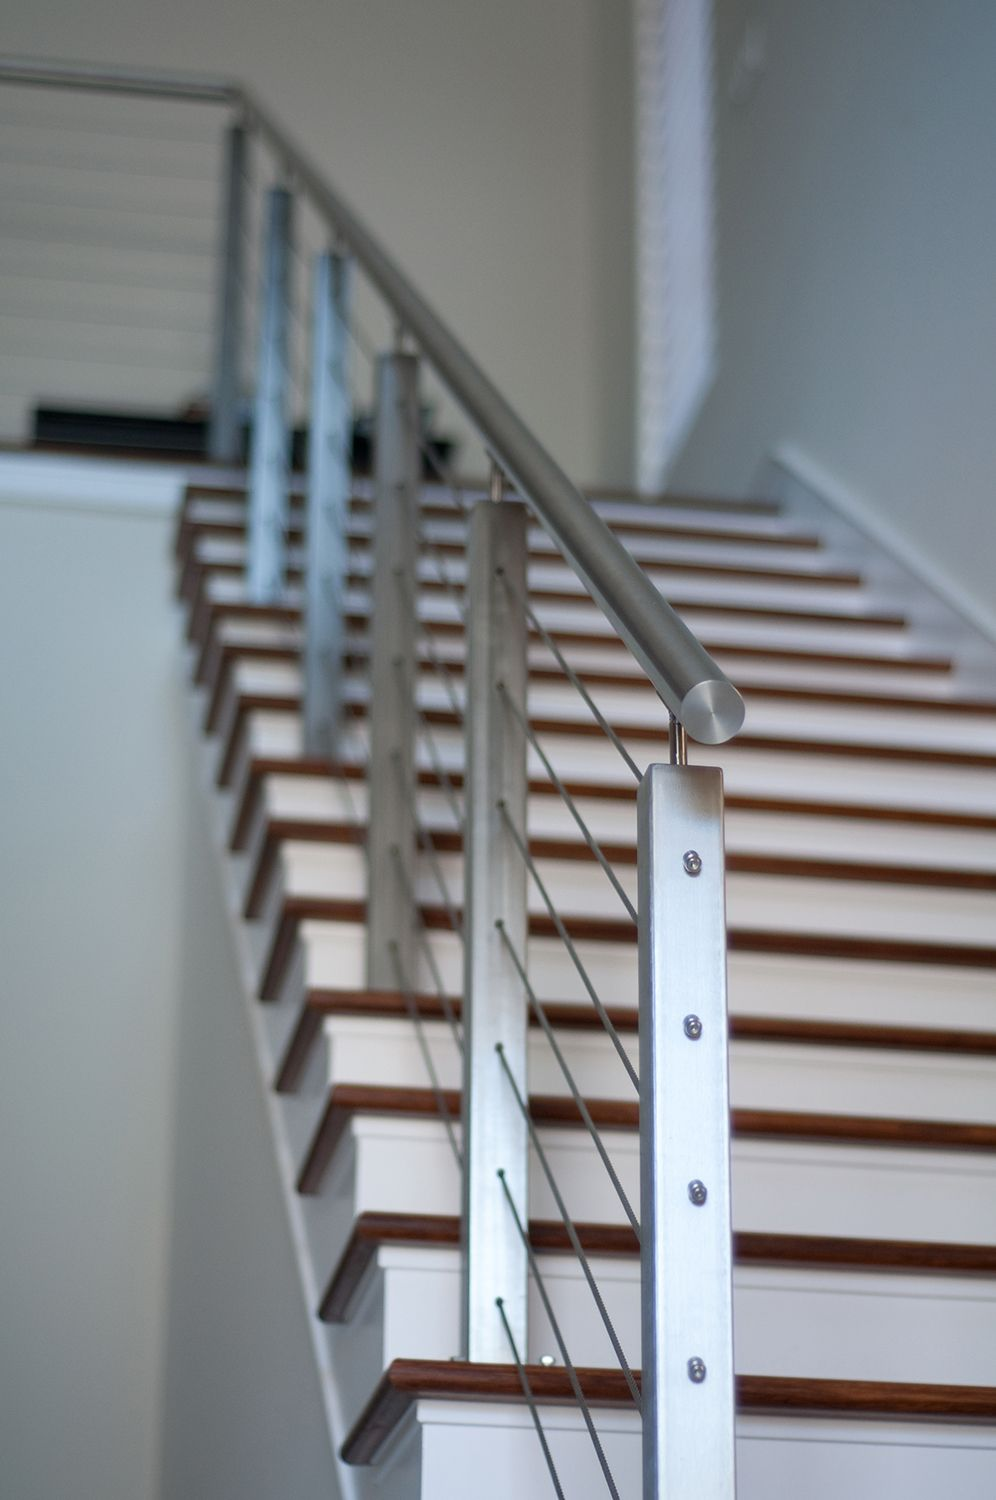 Square Steel Posts And Cable Railing By Indital Stainless Steel Cable Railing Cable Stair Railing Steel Railing Design